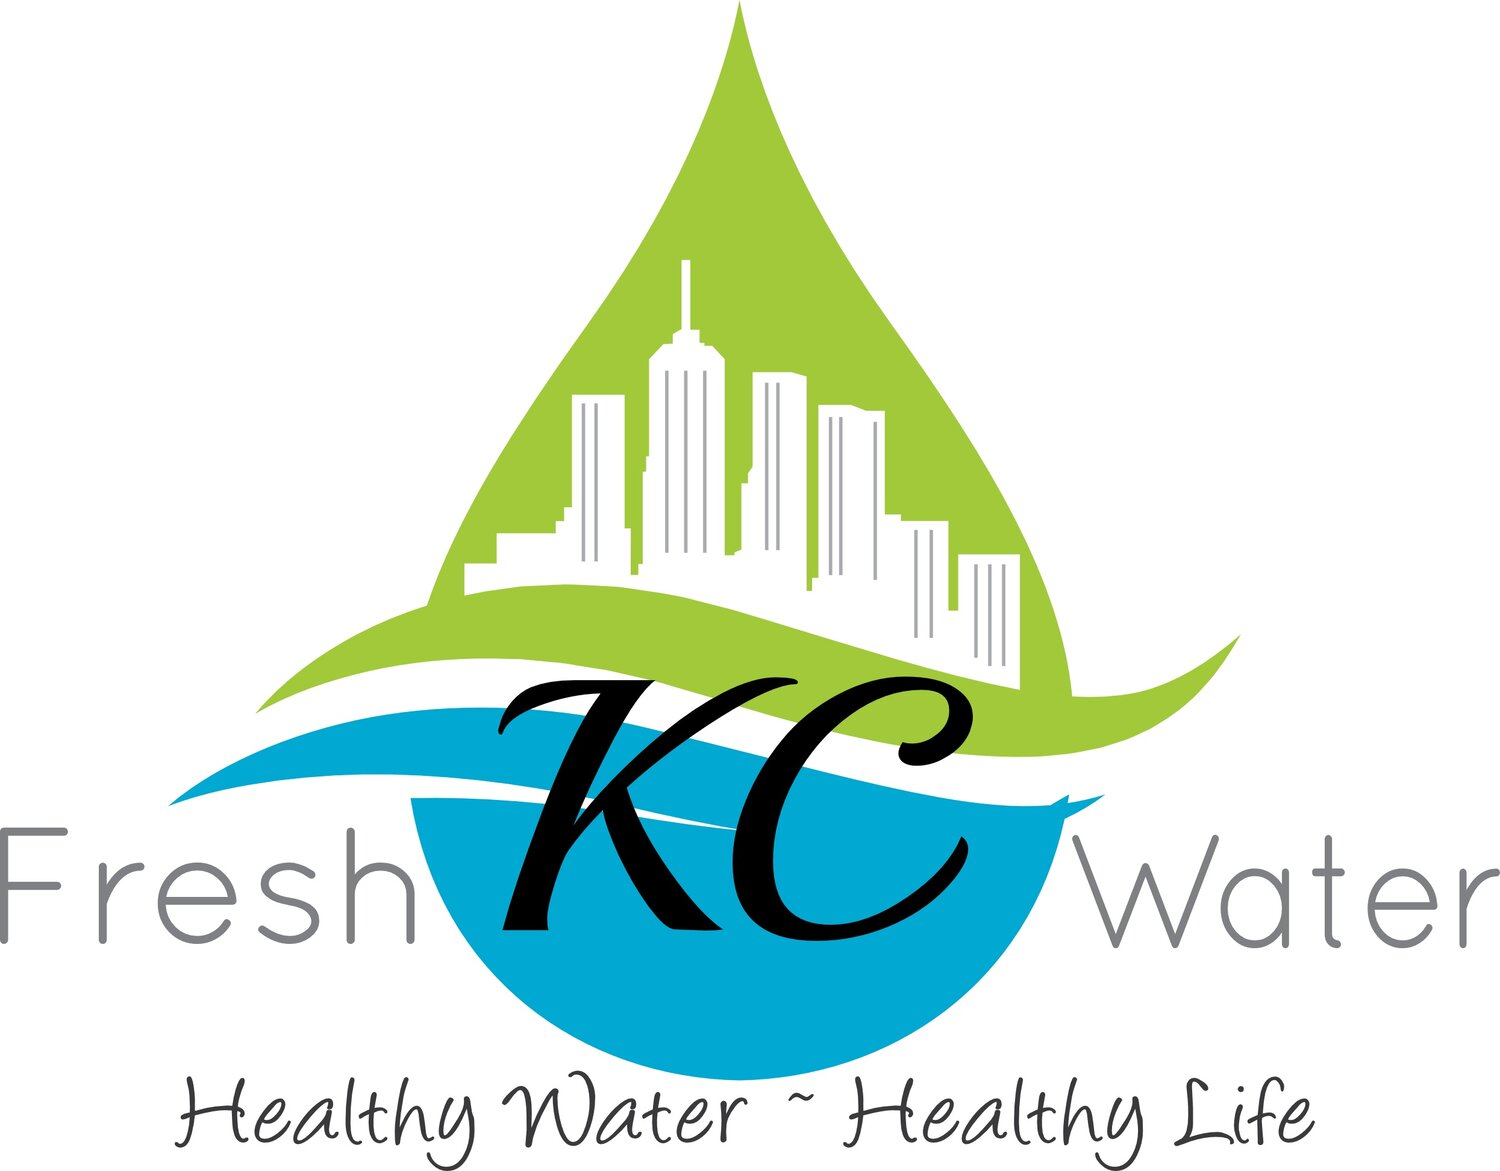 Fresh KC Water